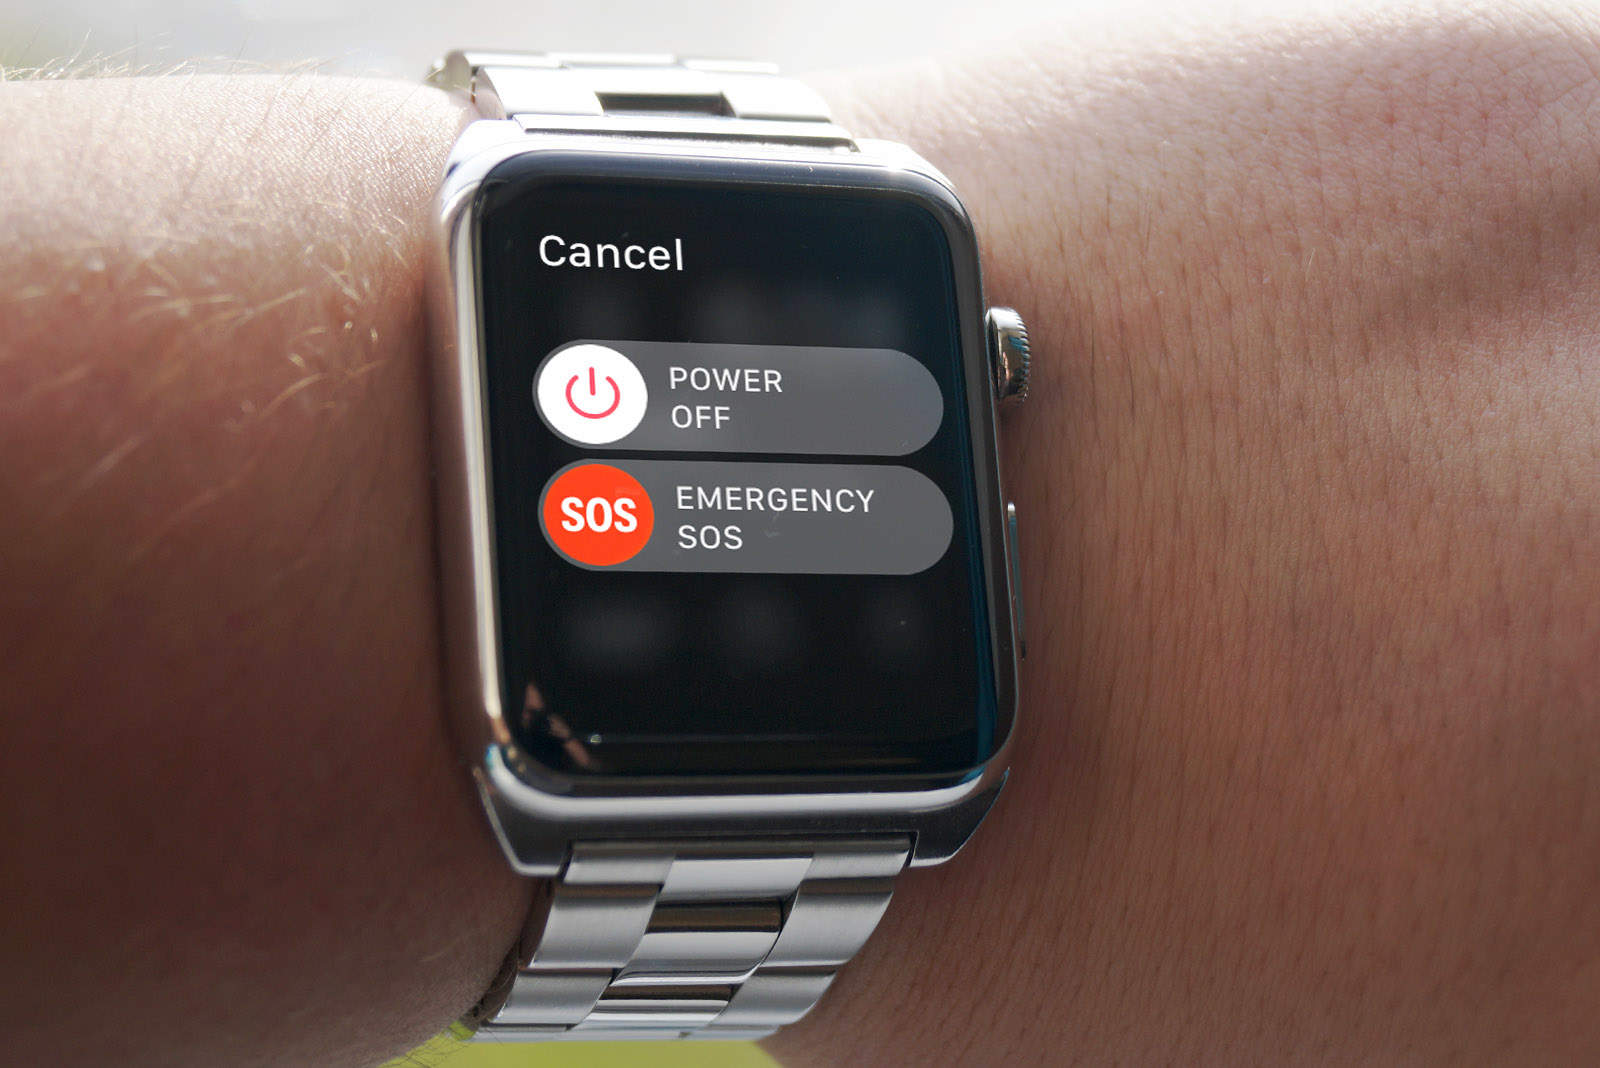 How to send an emergency SOS on Apple Watch